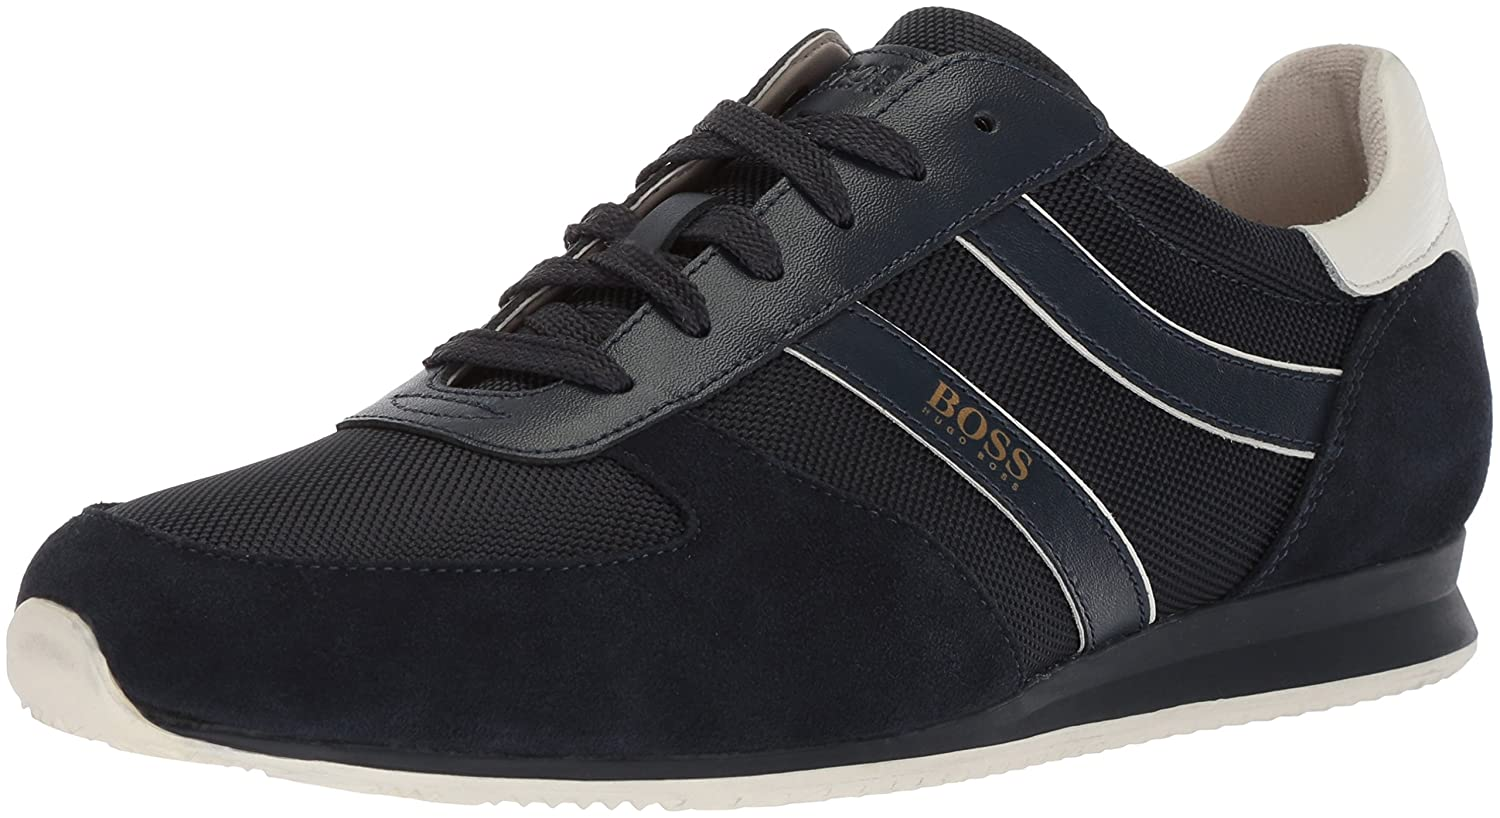 Hugo Boss Orland_Lowp_ny1 Fashion Herren Schuhe